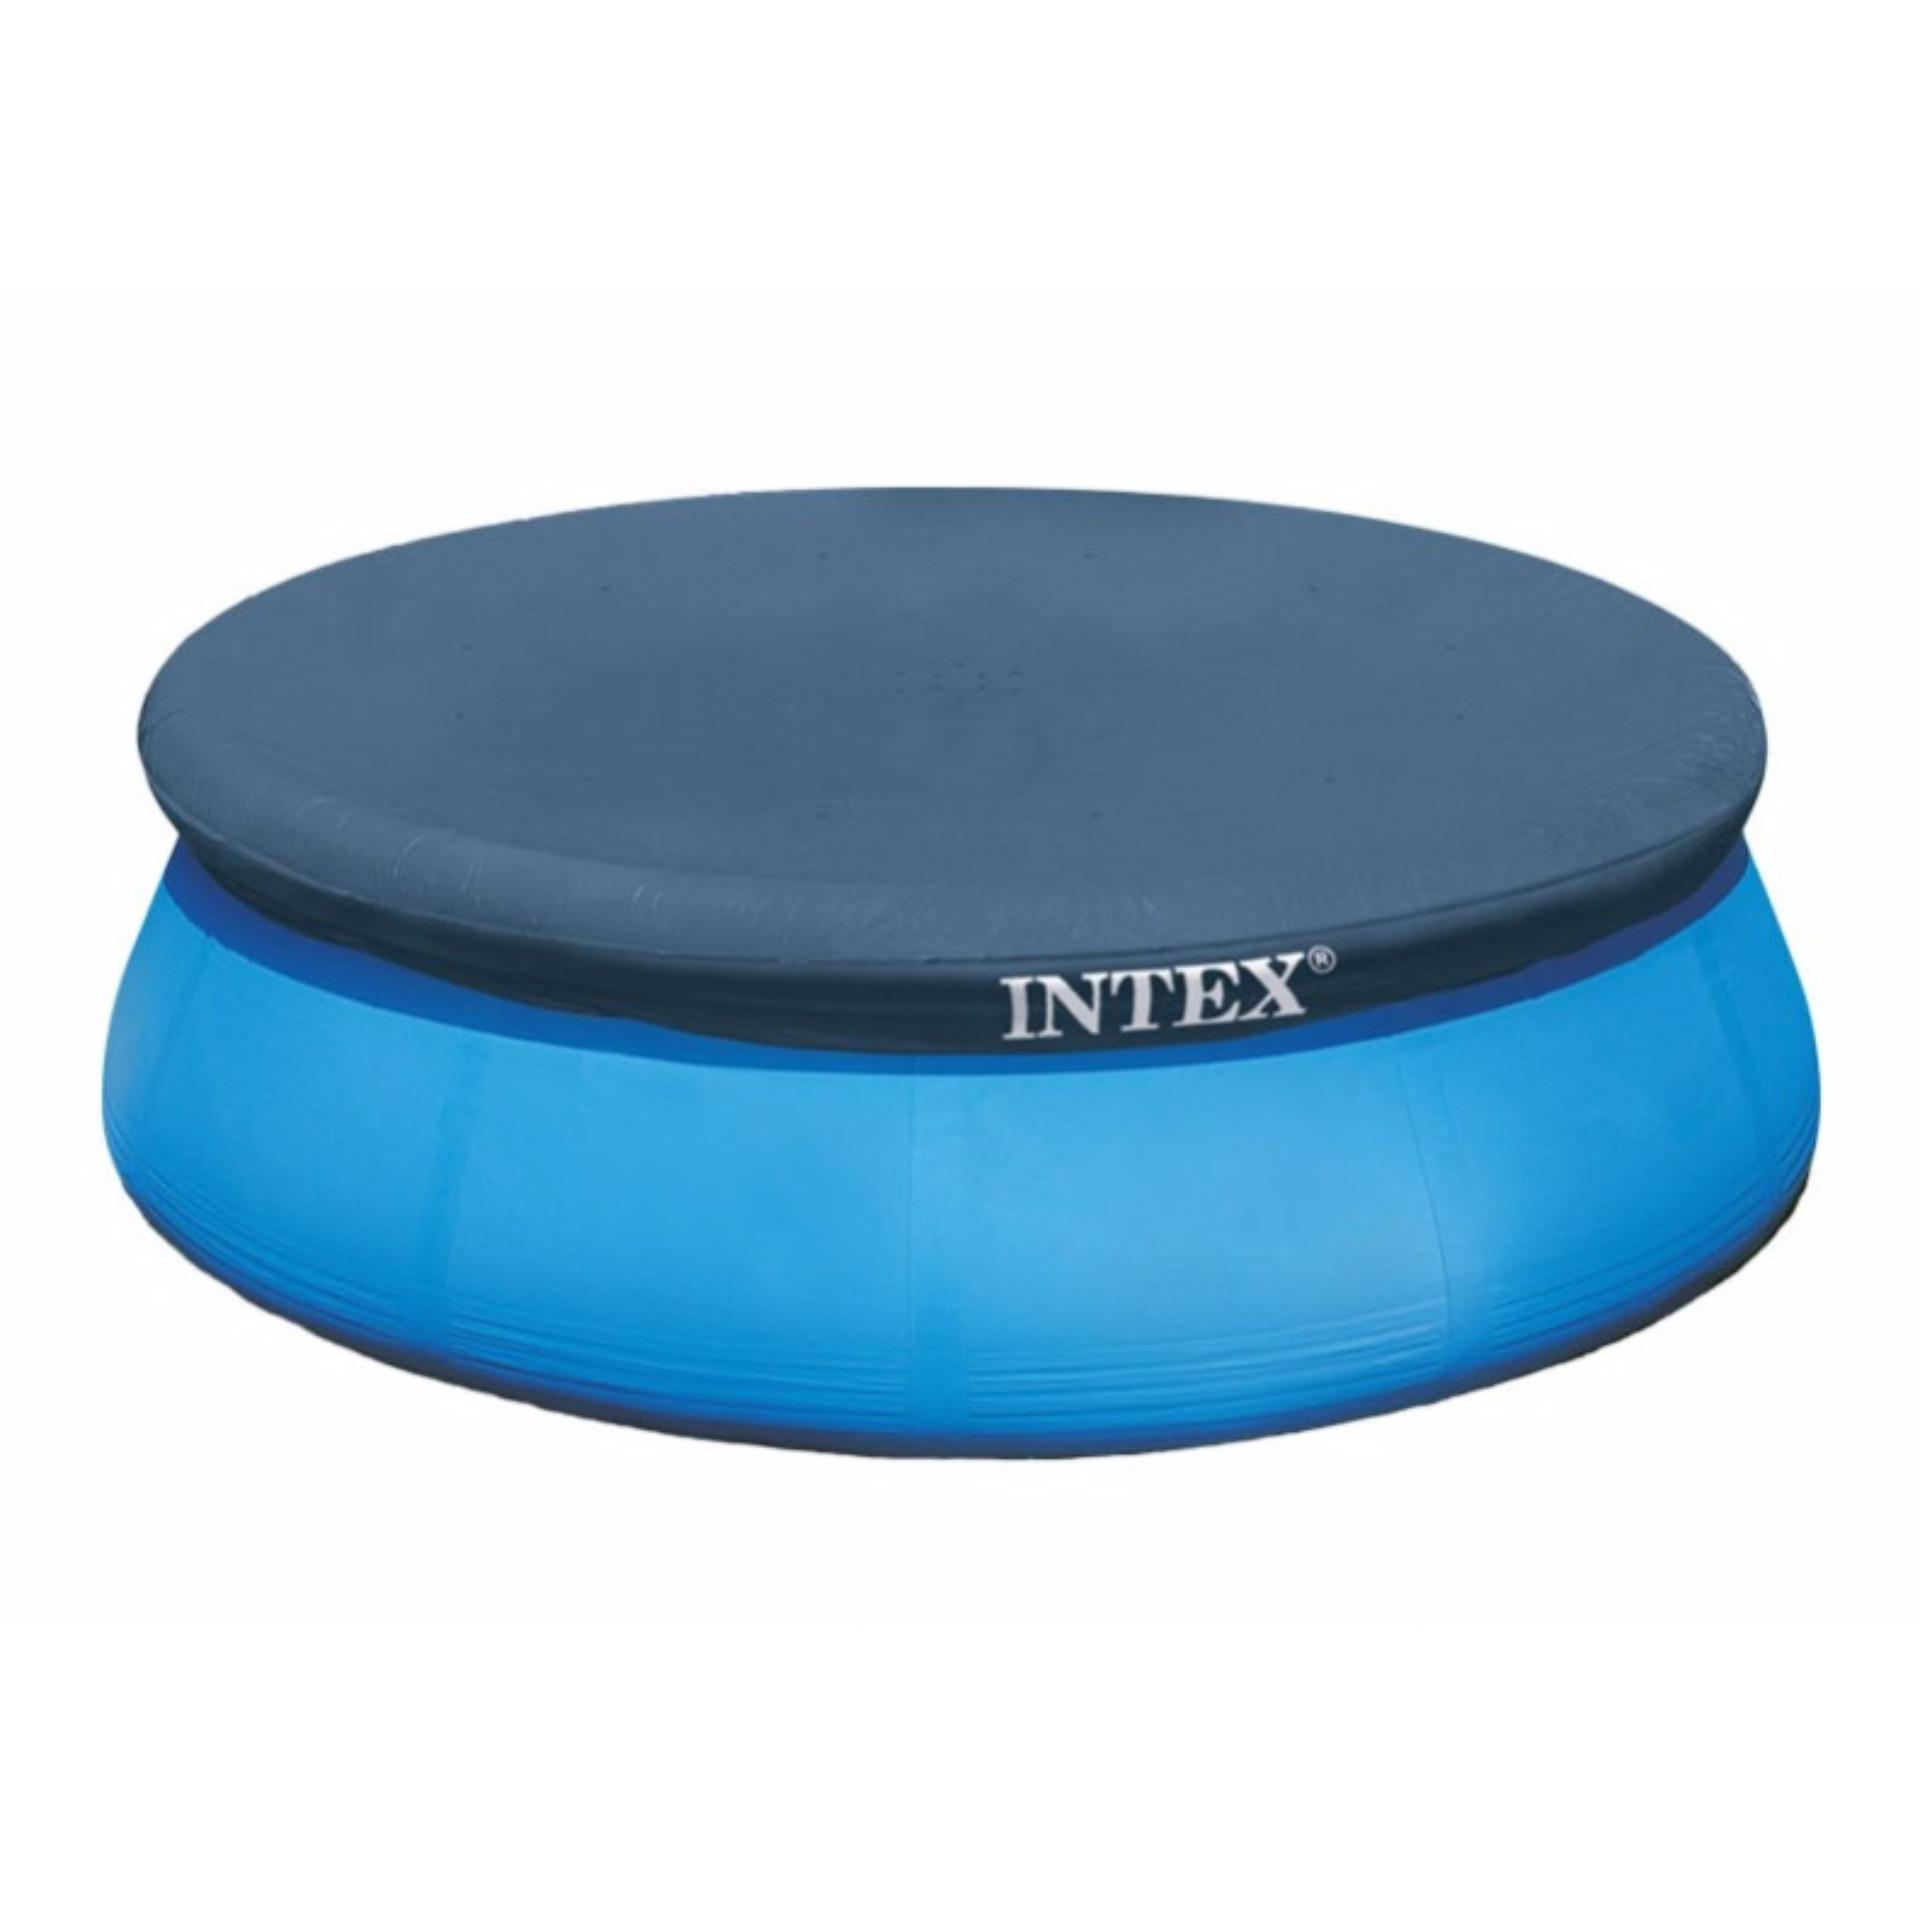 Intex Pool Cover For 8 Ft 244 M